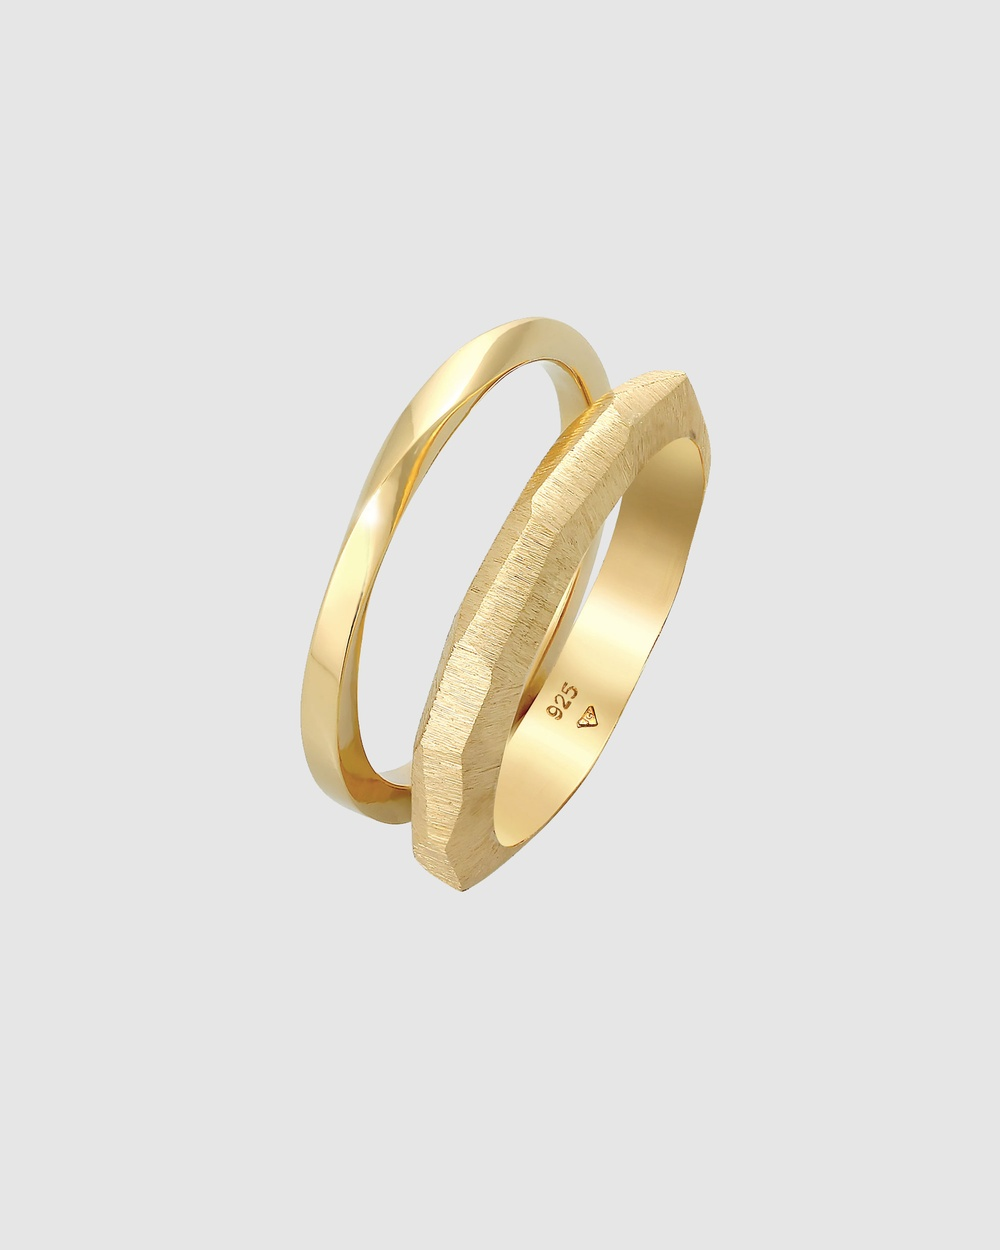 Elli Jewelry Ring Band Basic Twisted Structure Set of 2 in 925 Sterling Silver Jewellery Gold